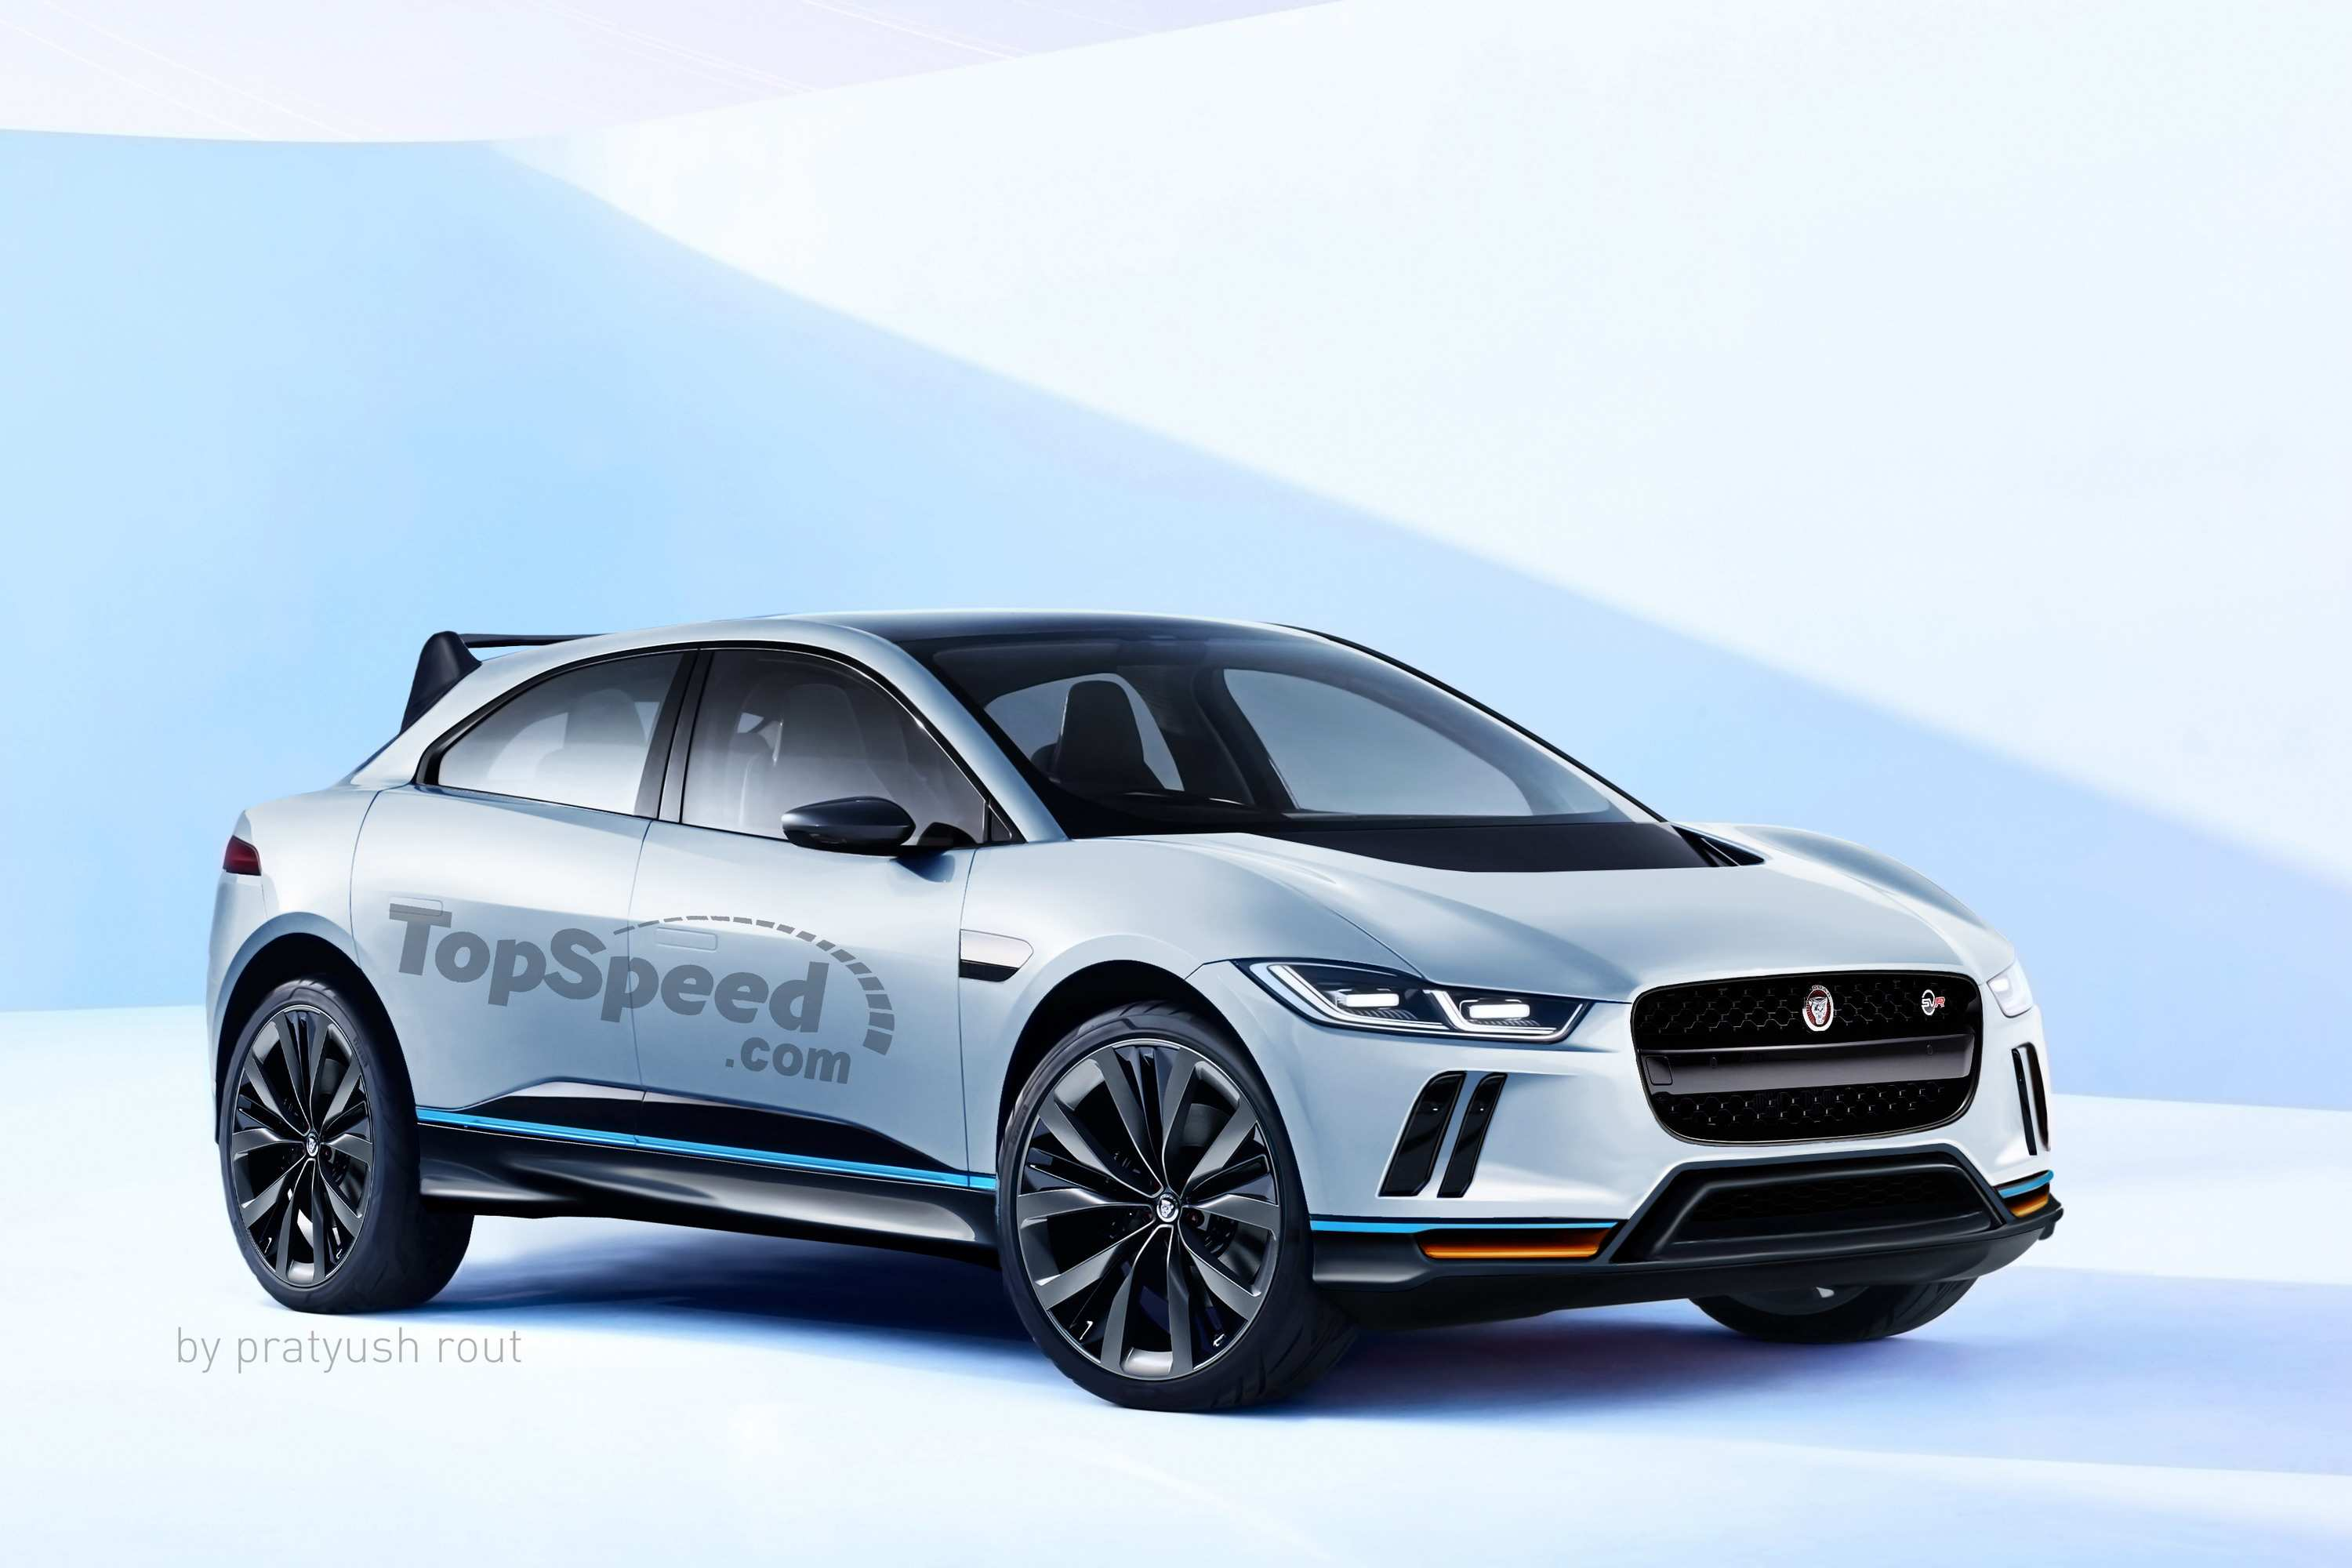 72 All New Jaguar I Pace 2020 Redesign